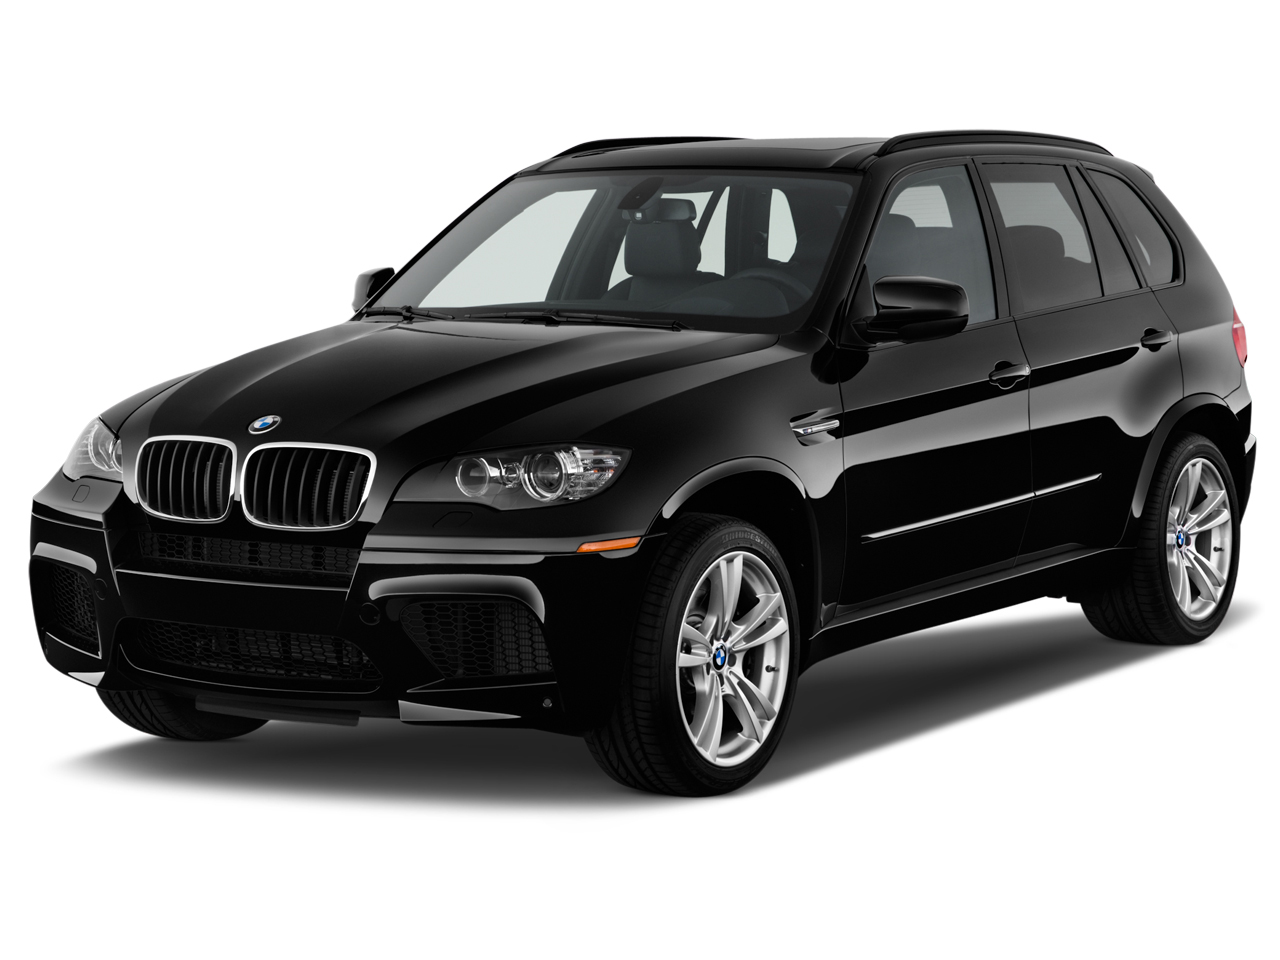 Nissan Fort Worth Used Cars 2011 BMW X5 M Review, Ratings, Specs, Prices, and Photos ...